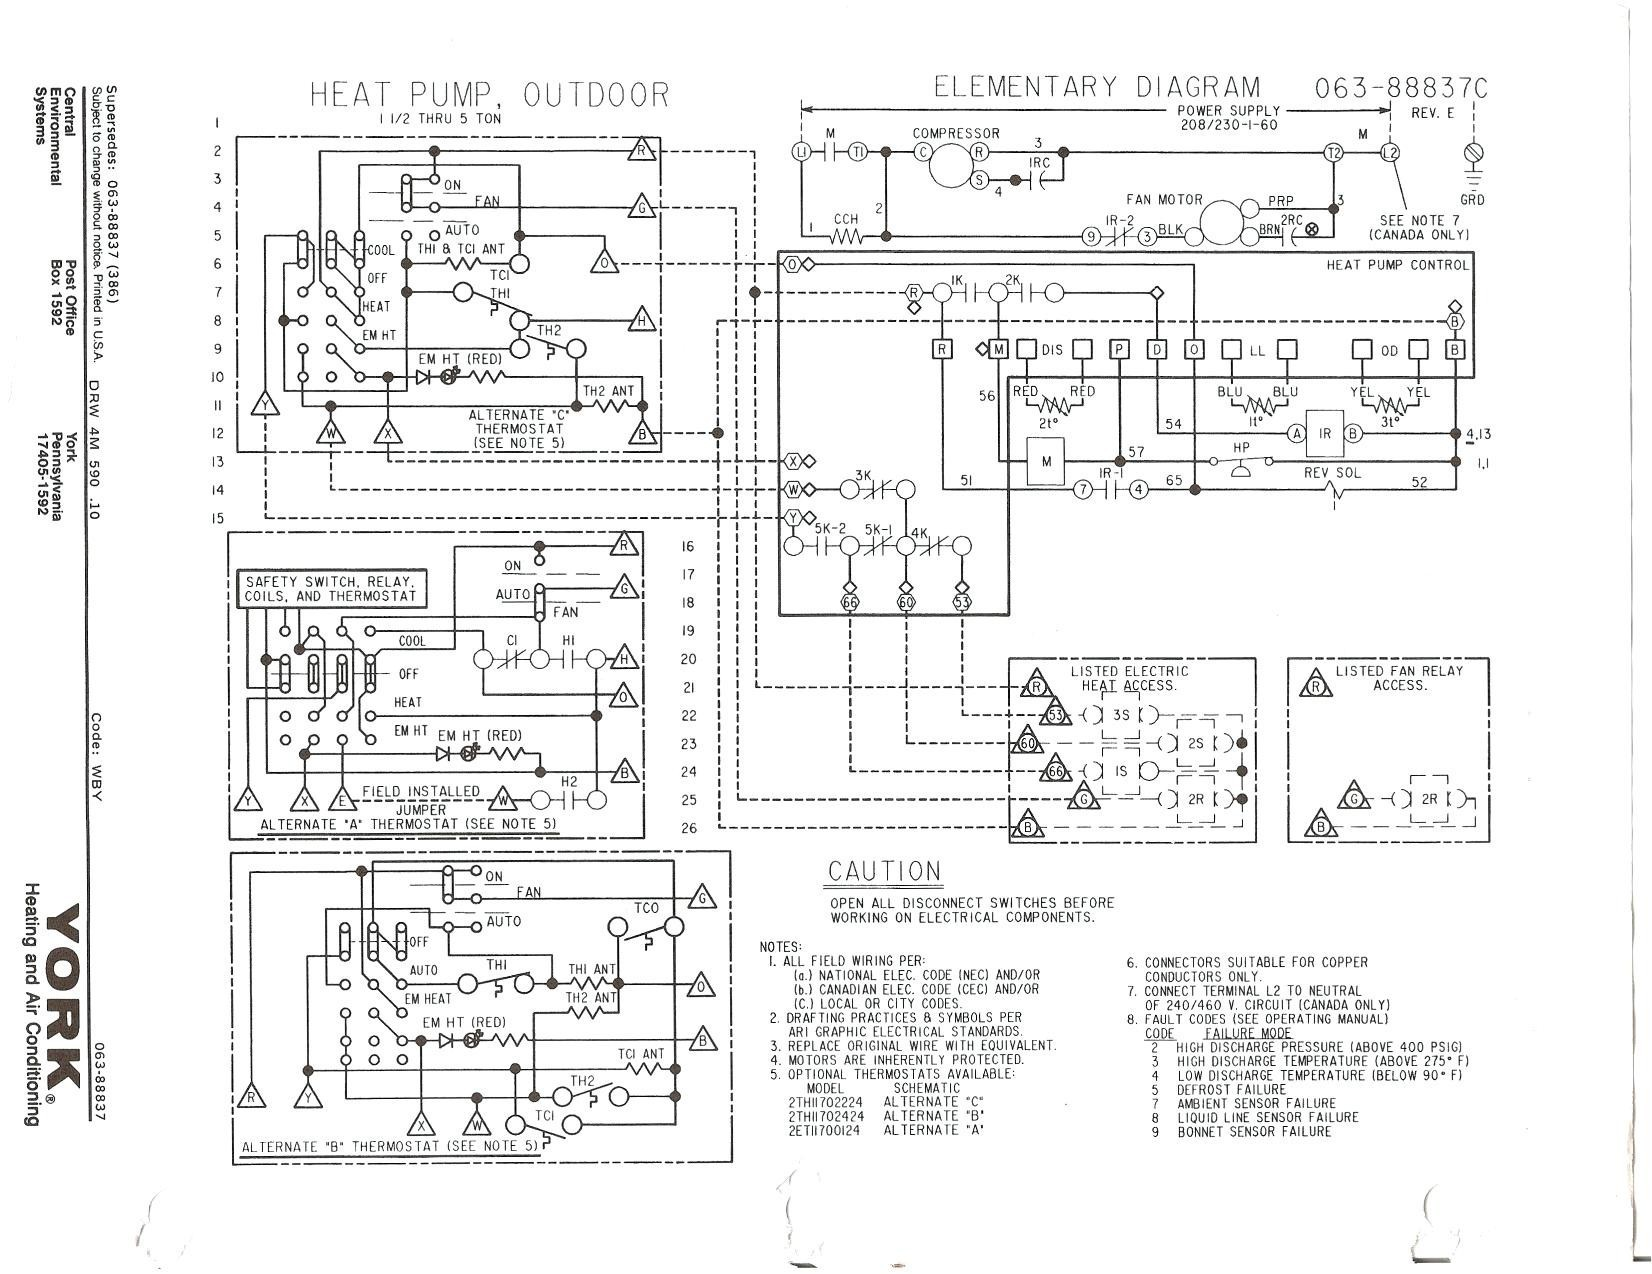 Bard Heat Pump Wiring Diagram Goodman Heat Pump Wiring Diagram Best thermostat for Of Bard Heat Pump Wiring Diagram